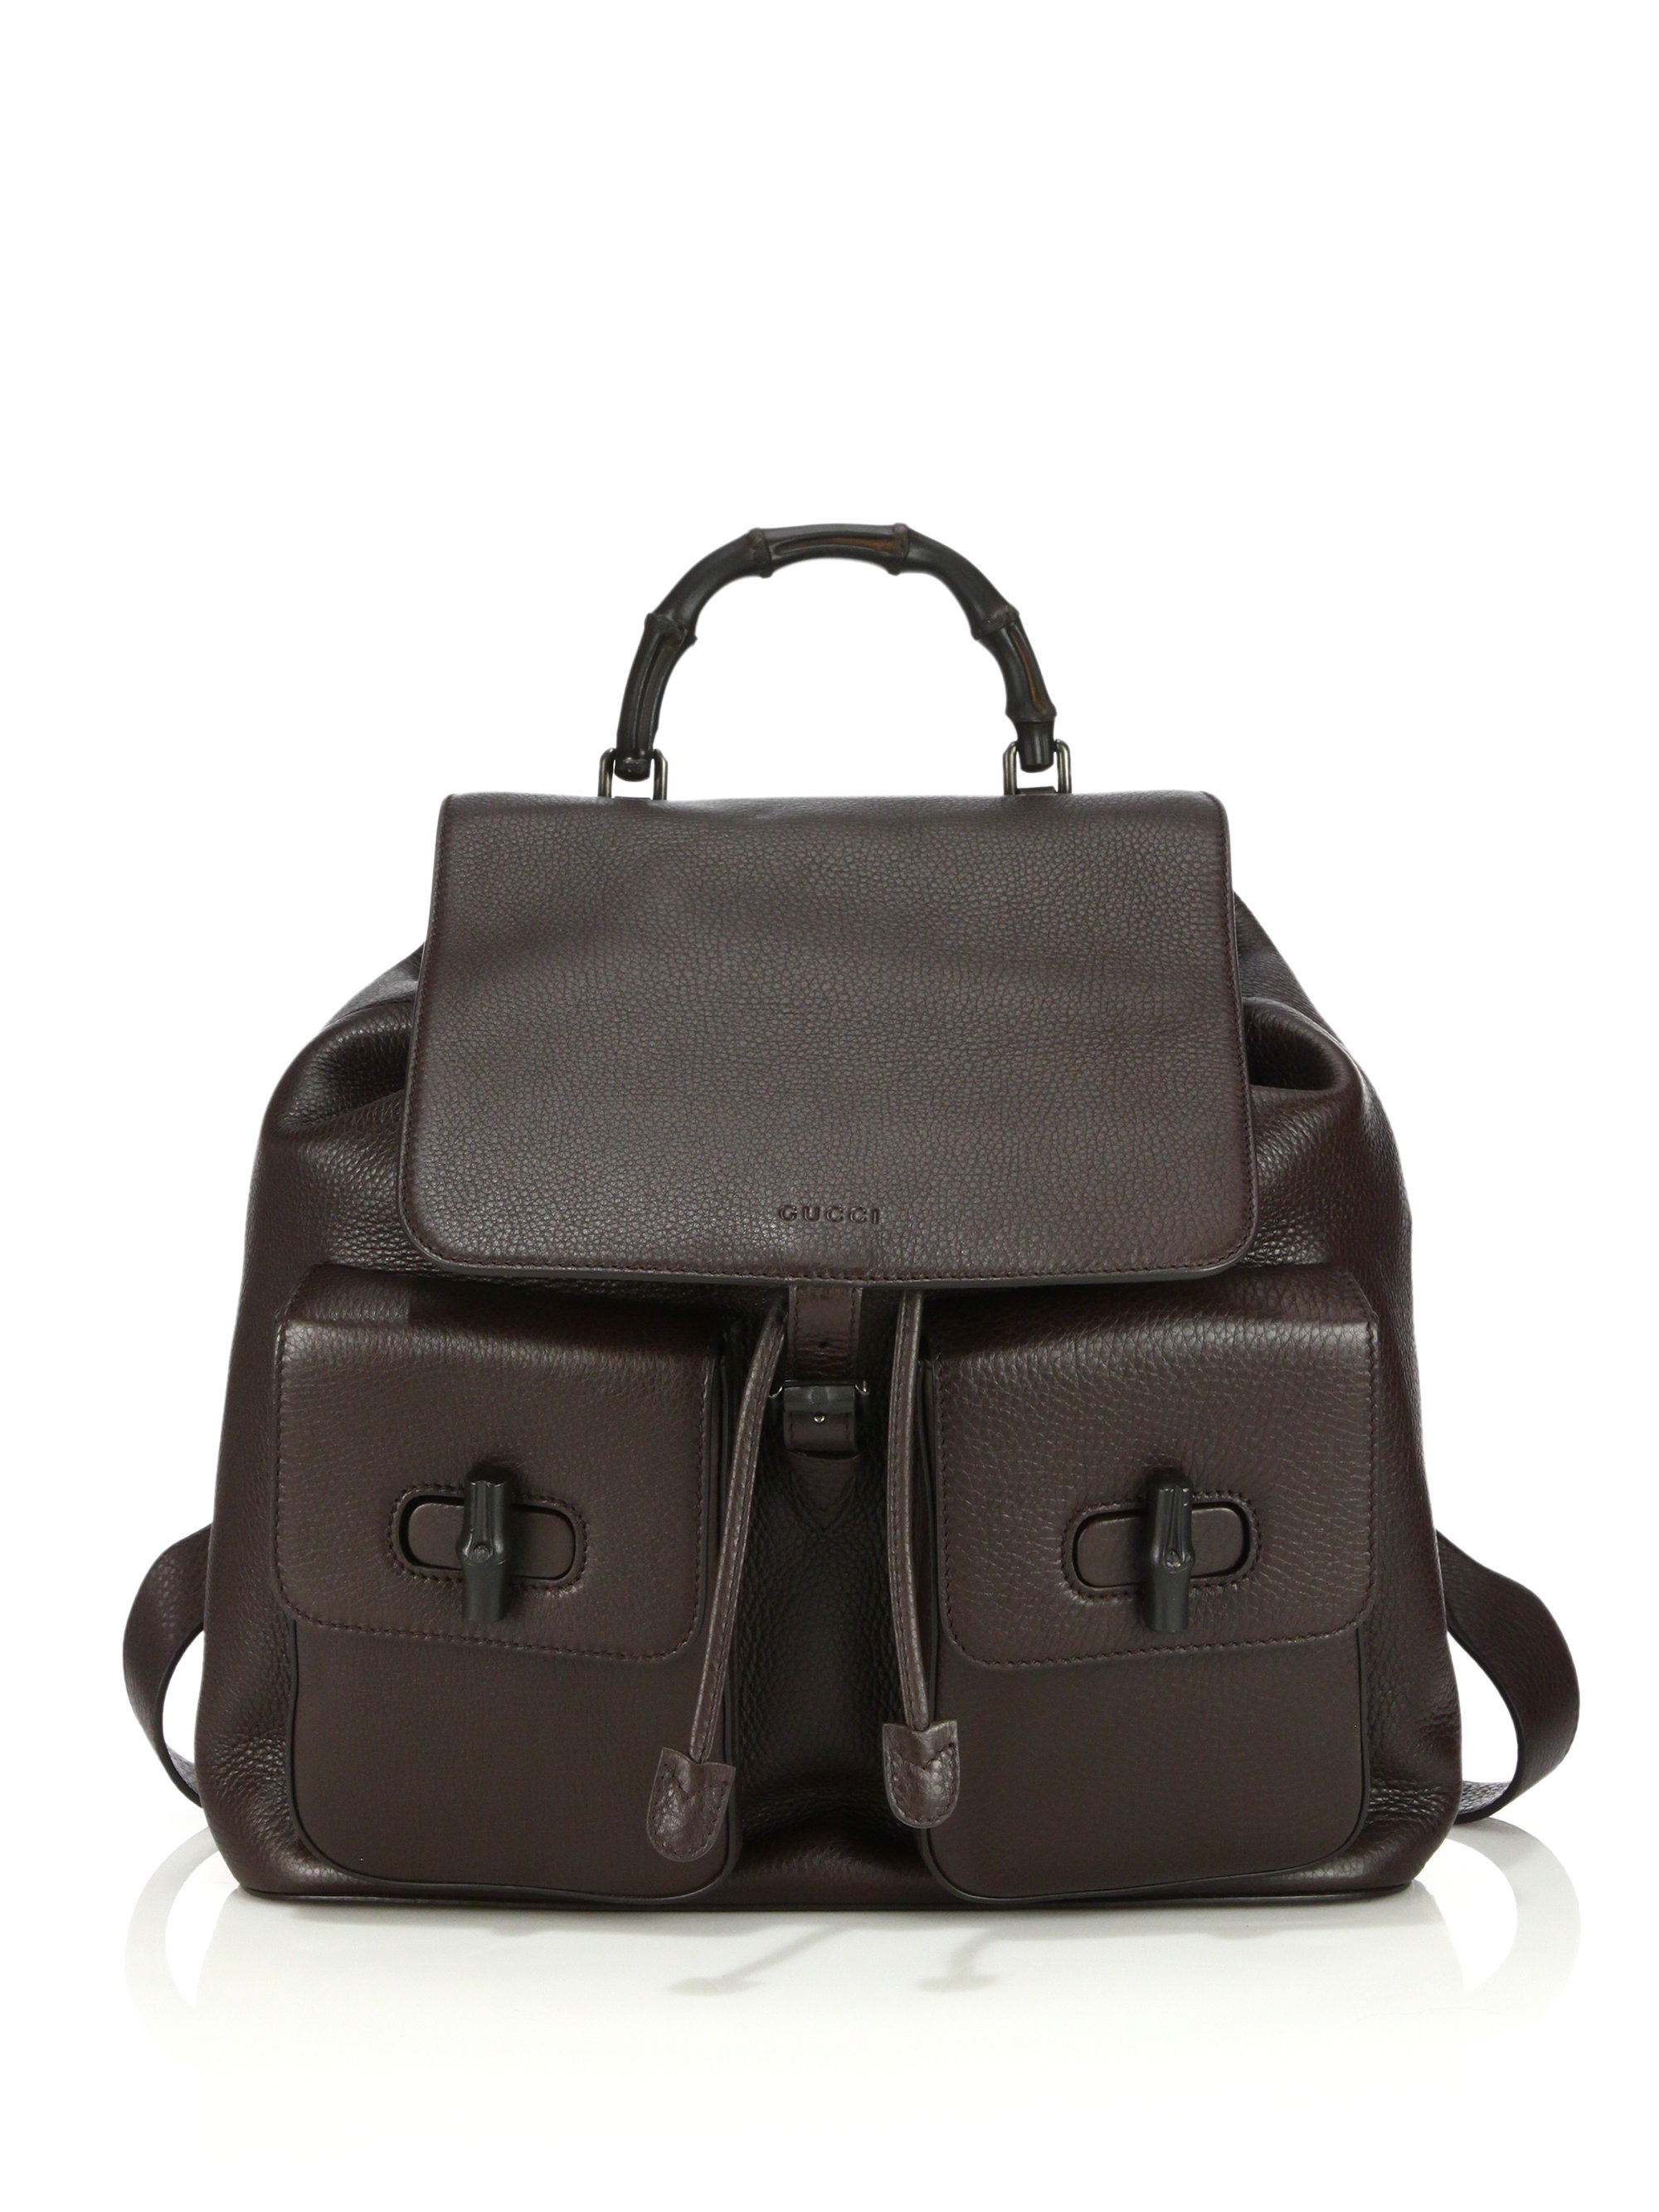 Gucci Bamboo Leather Backpack In Brown For Men Lyst